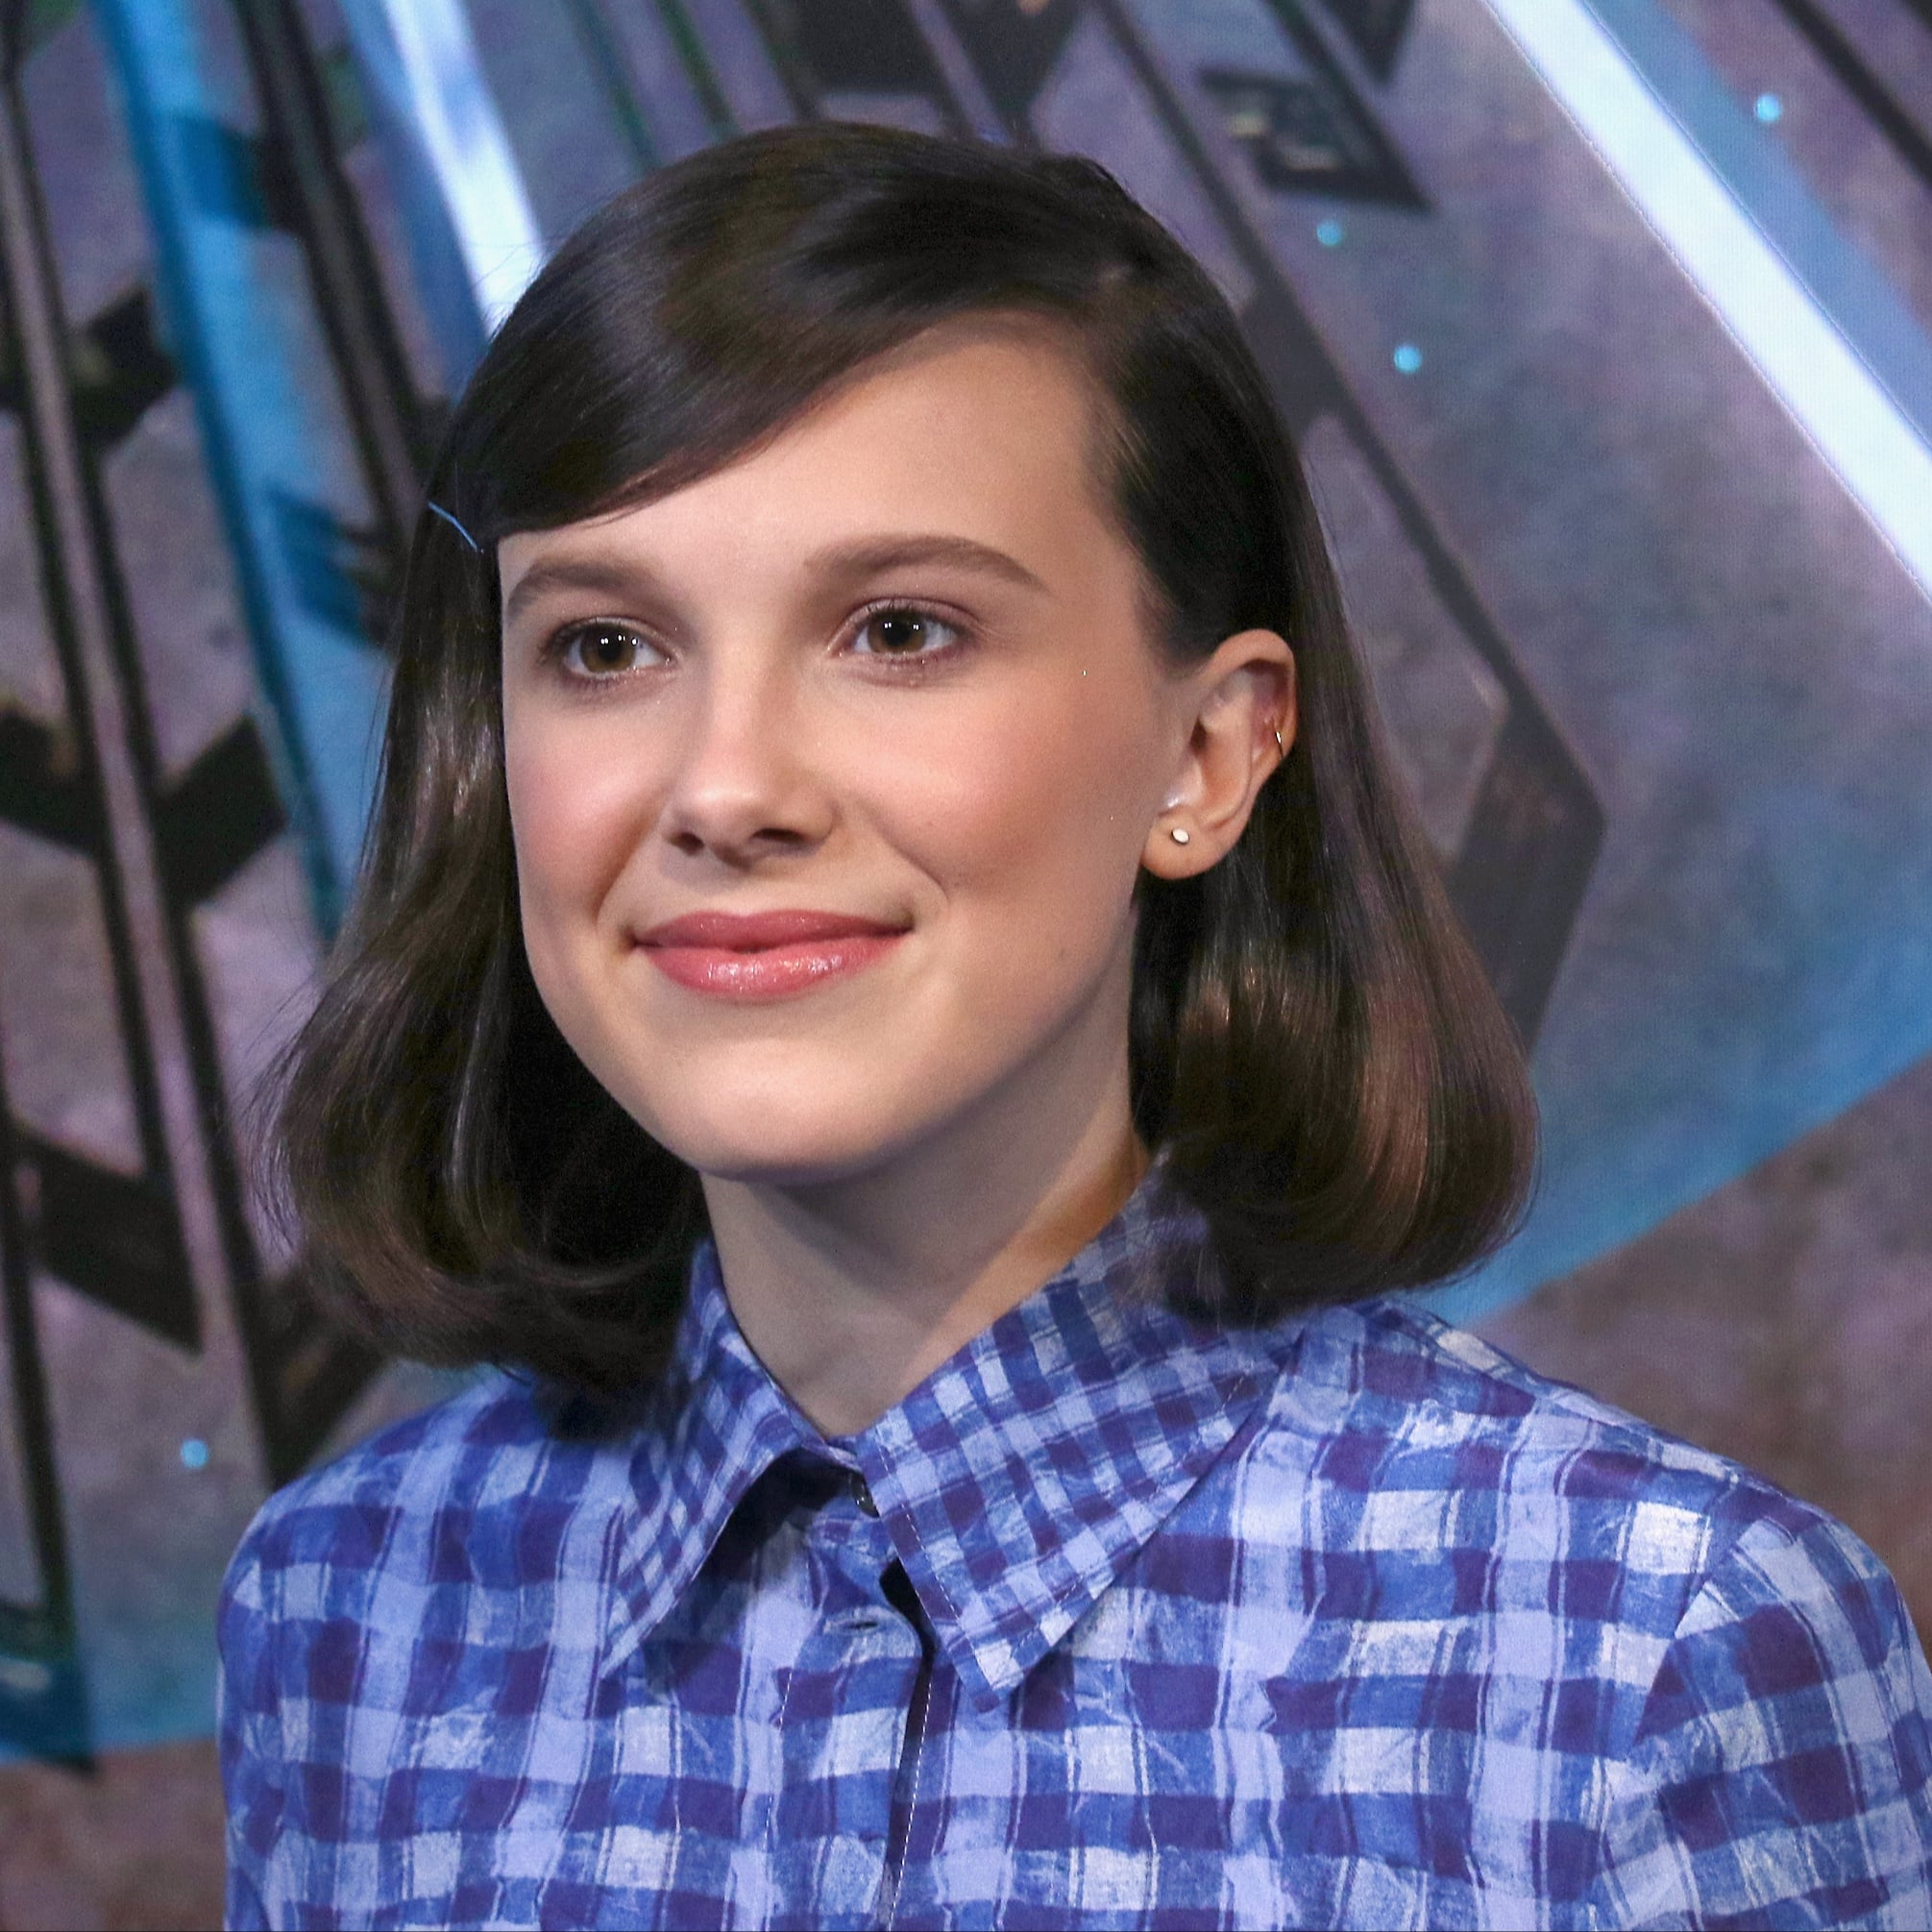 40889fa4 How Old Is Millie Bobby Brown in 2019? | POPSUGAR Celebrity